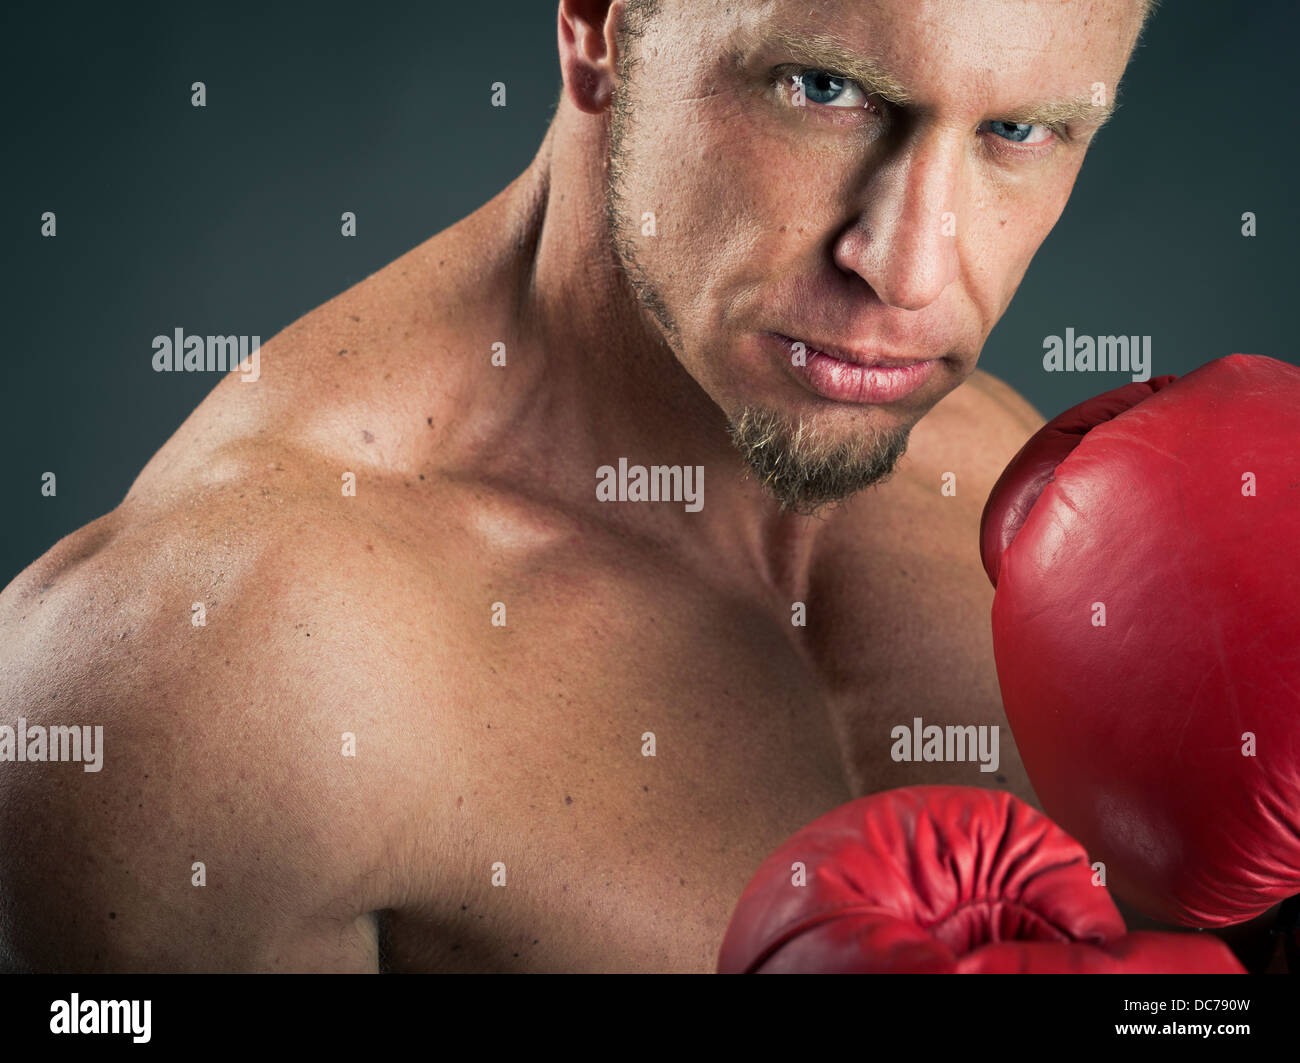 Muscular heavyweight boxer with red boxing gloves - Stock Image